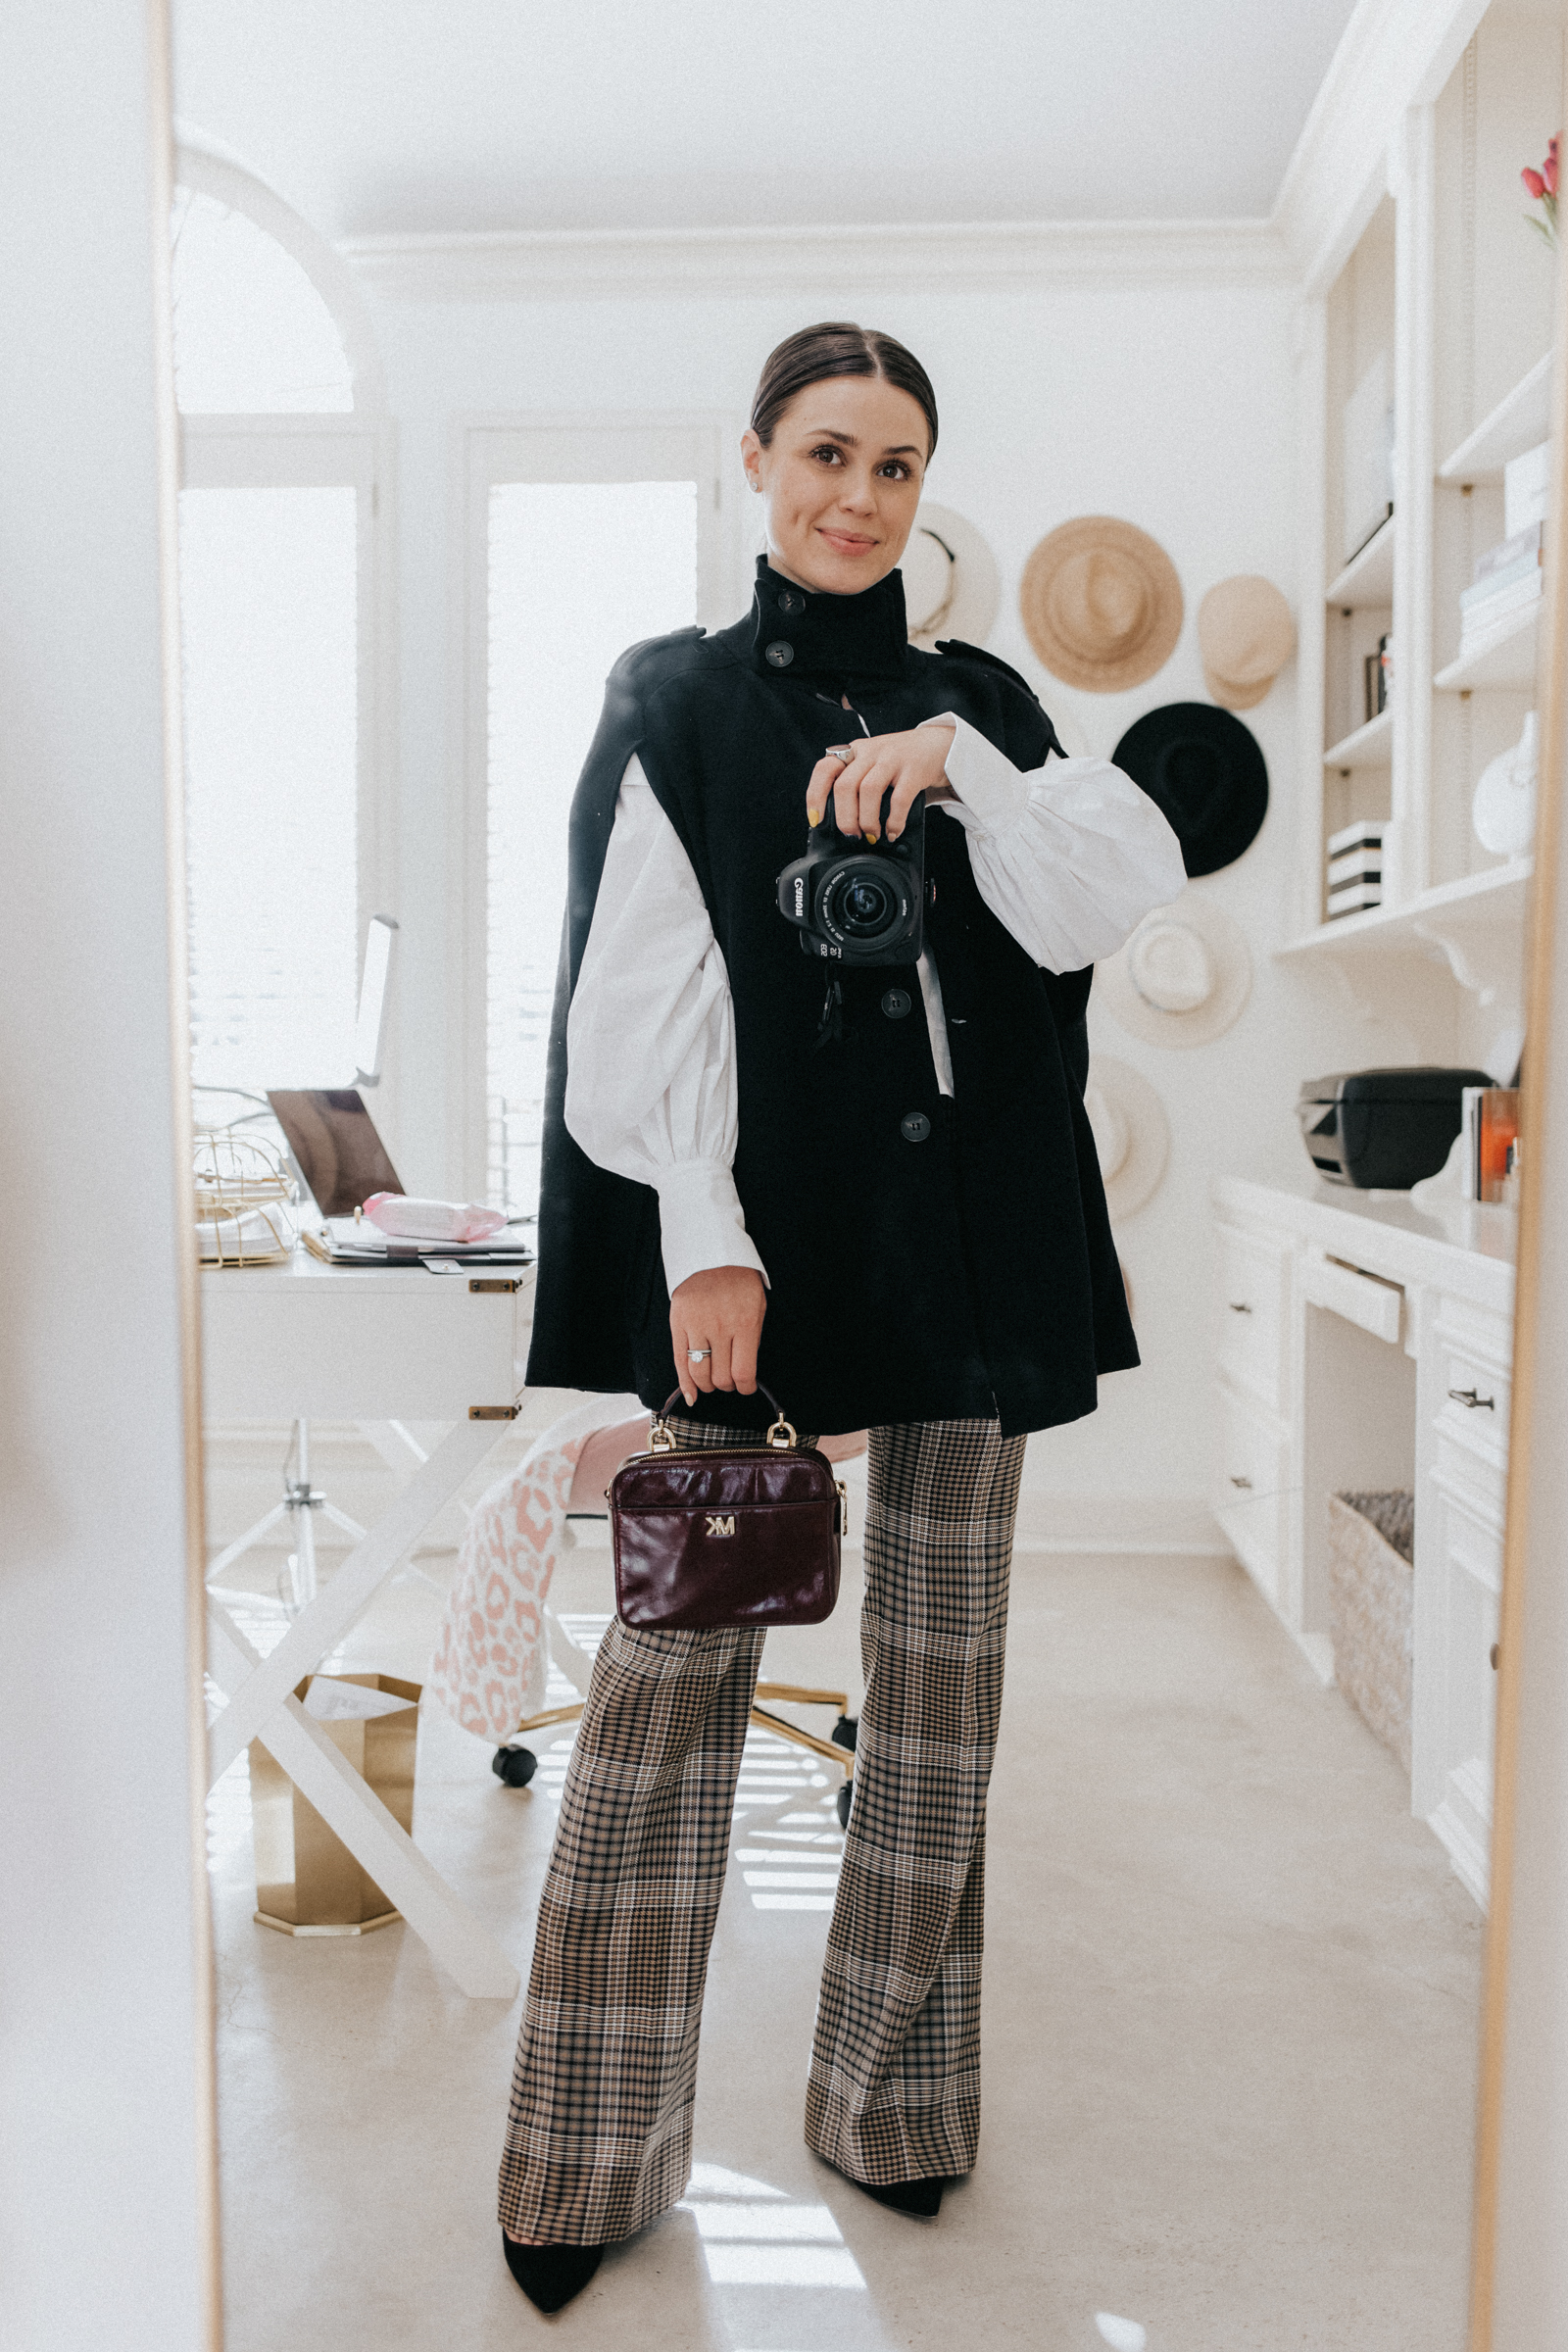 elly brown styles a winter cape coat from Zara with plaid flared pants and a white blouse